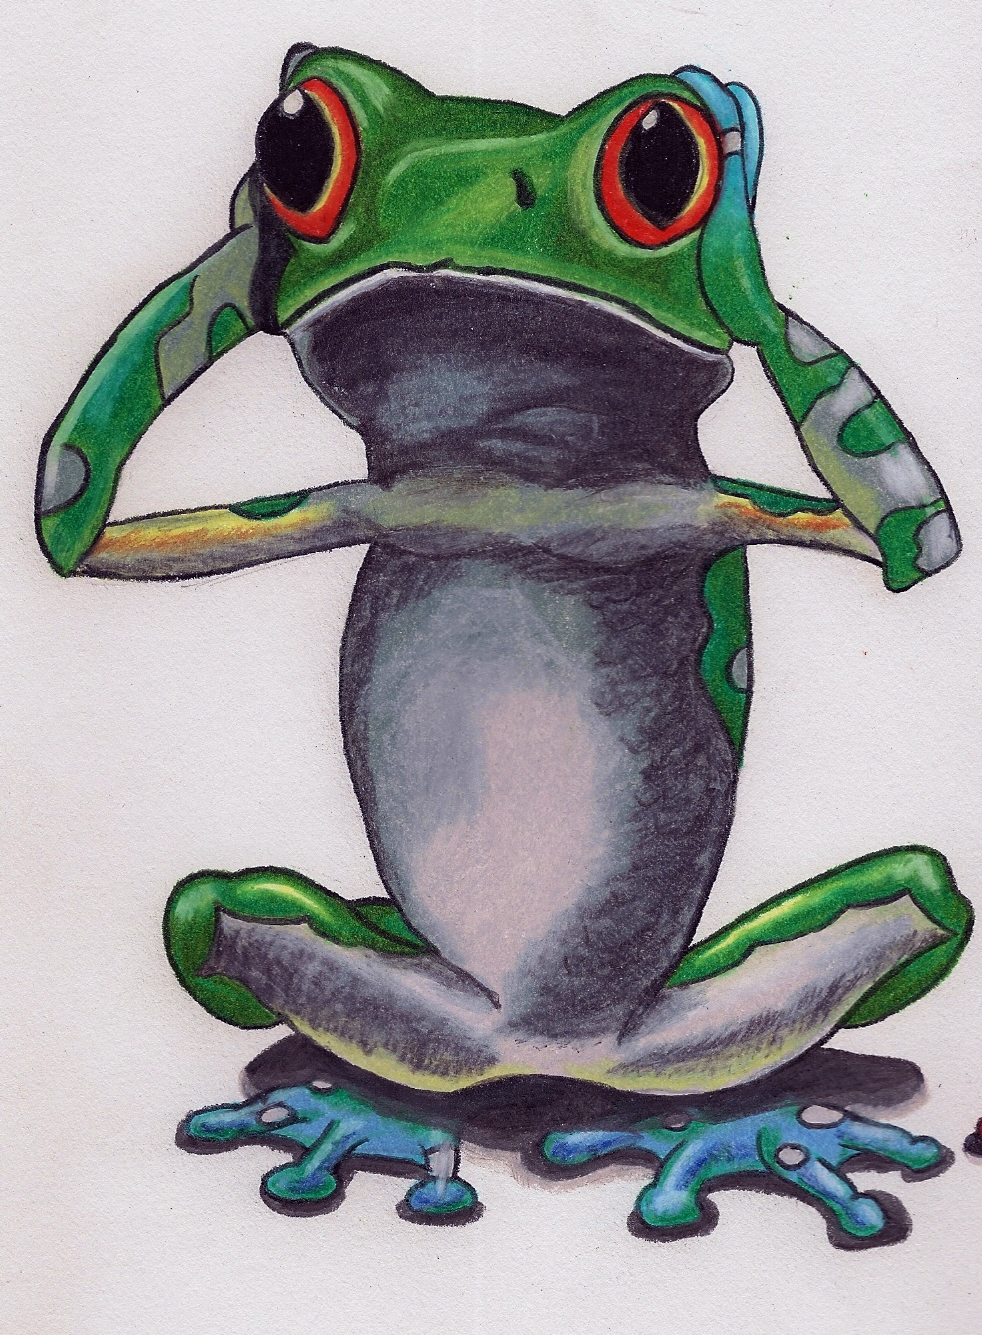 frog drawn in color pencil